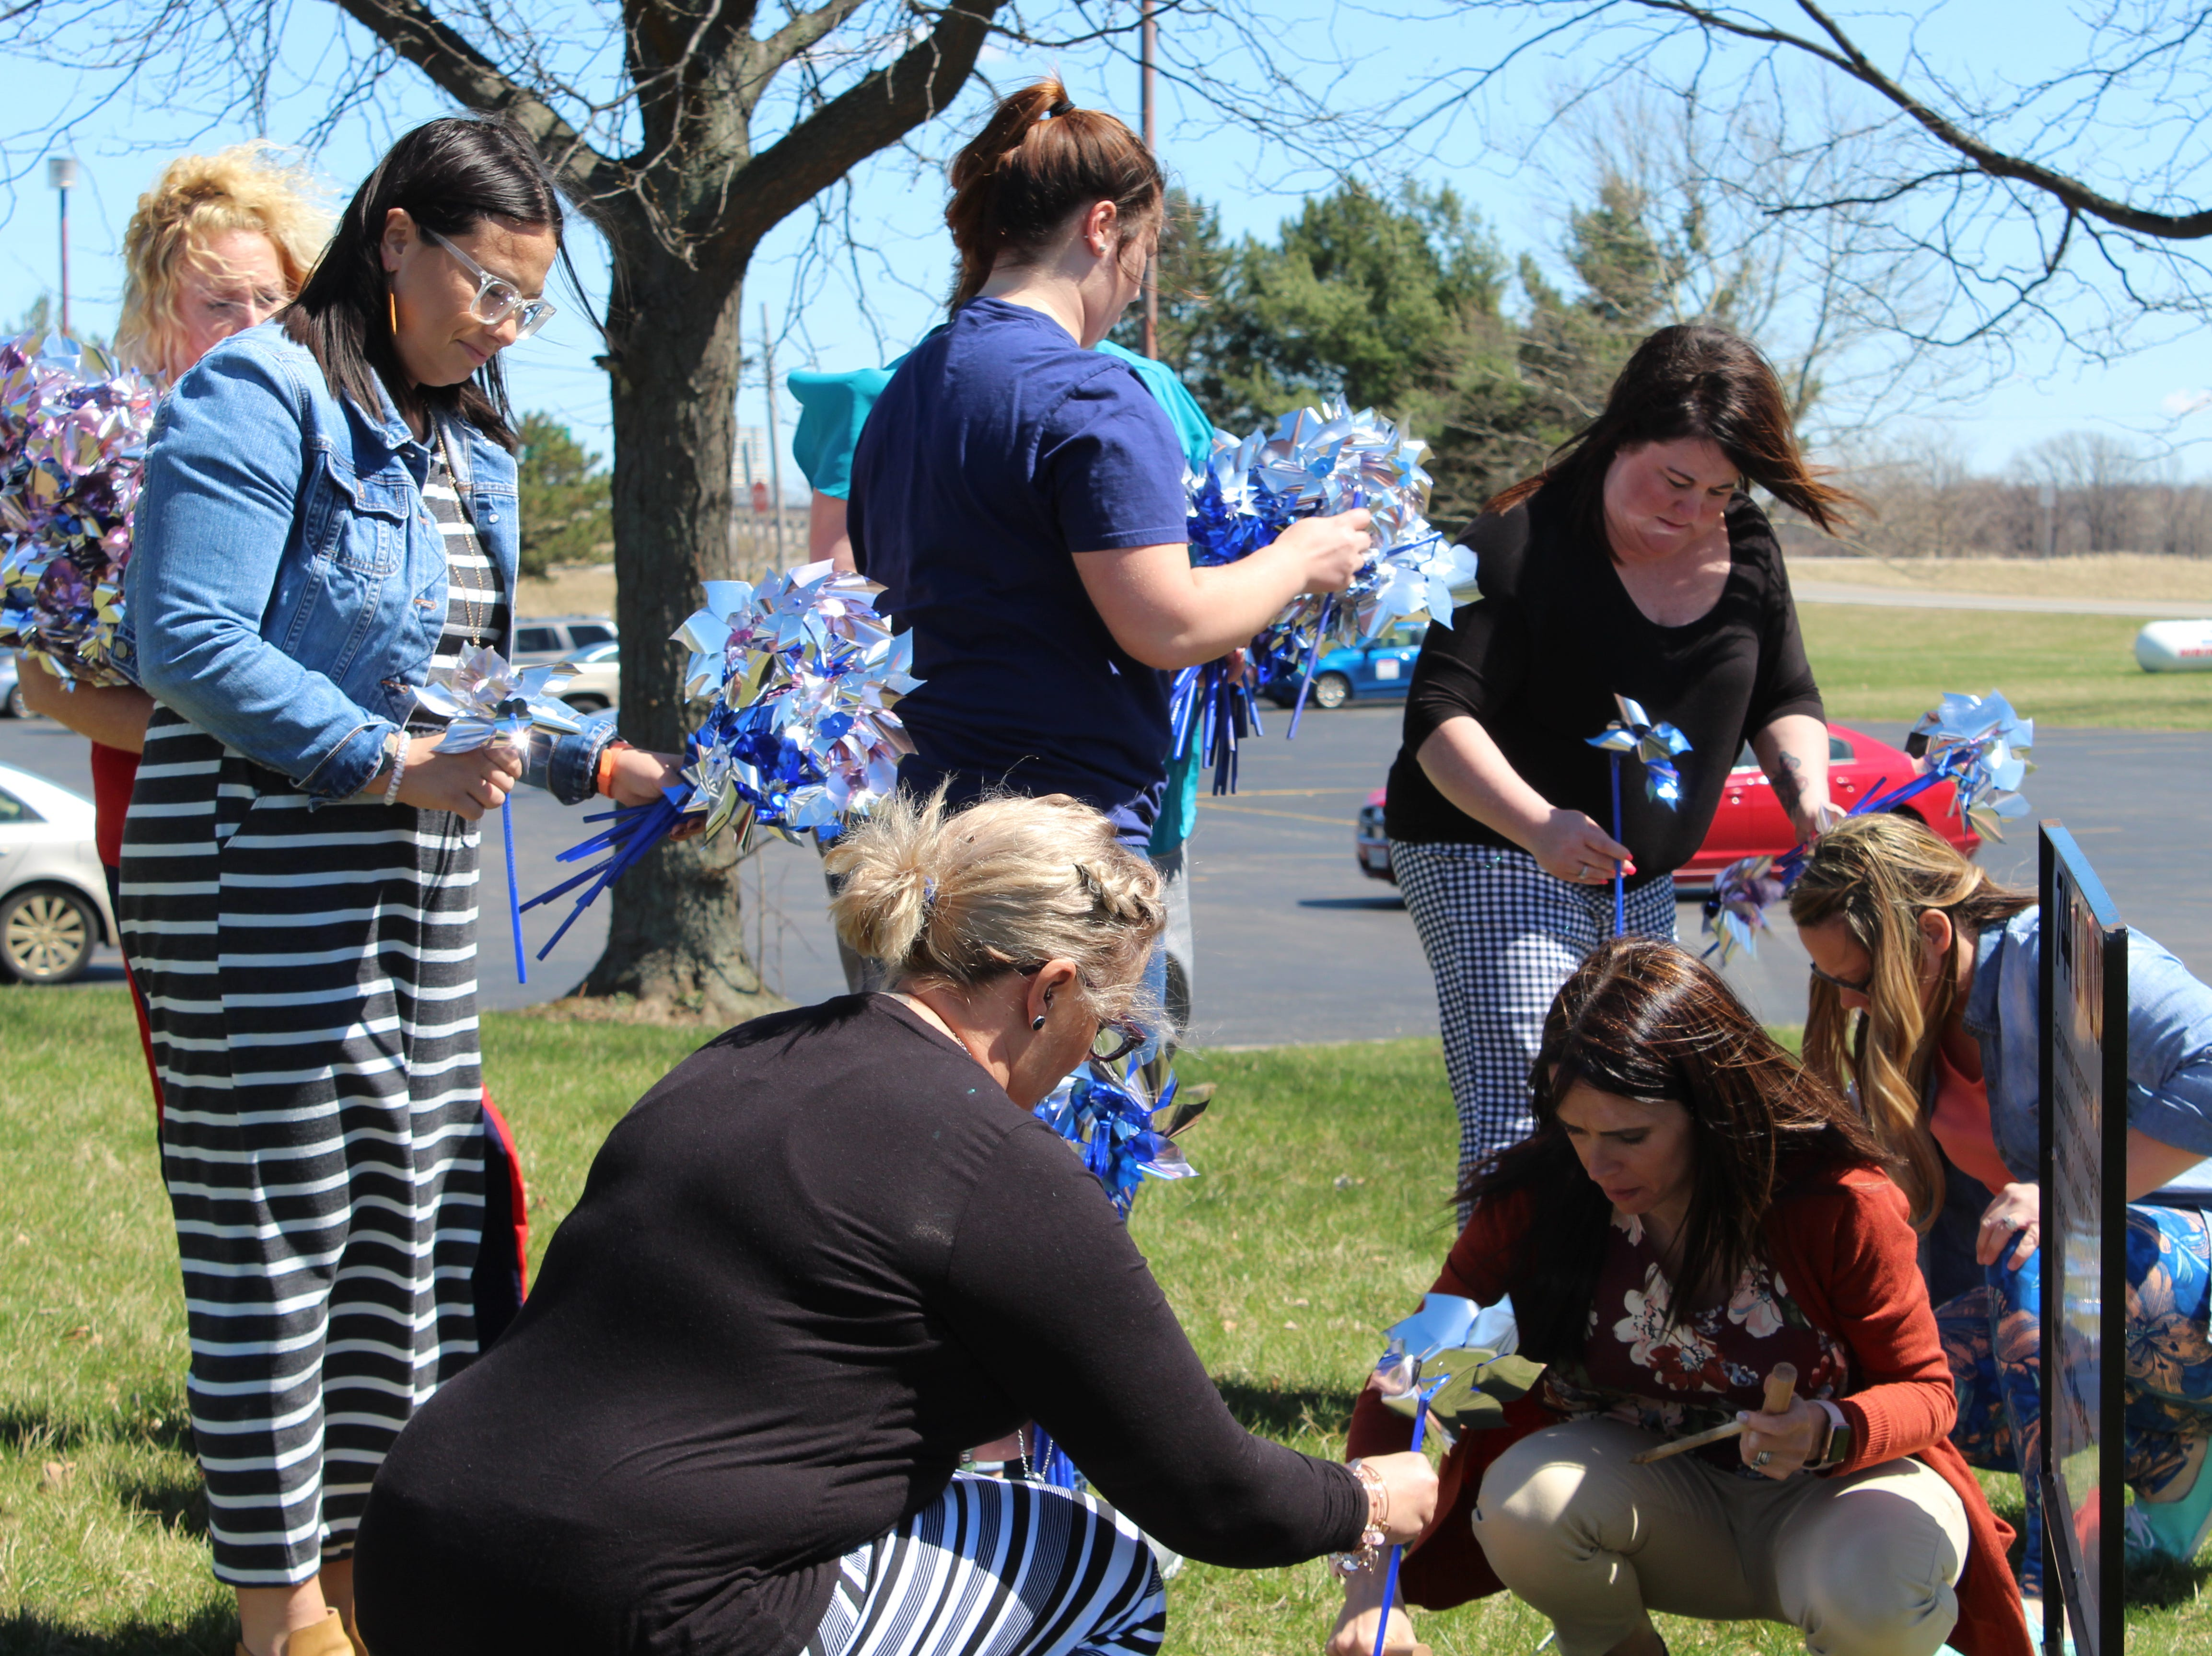 Sandusky County Department of Job and Family Services workers planted pinwheels to support the number of children they assisted in 2018.